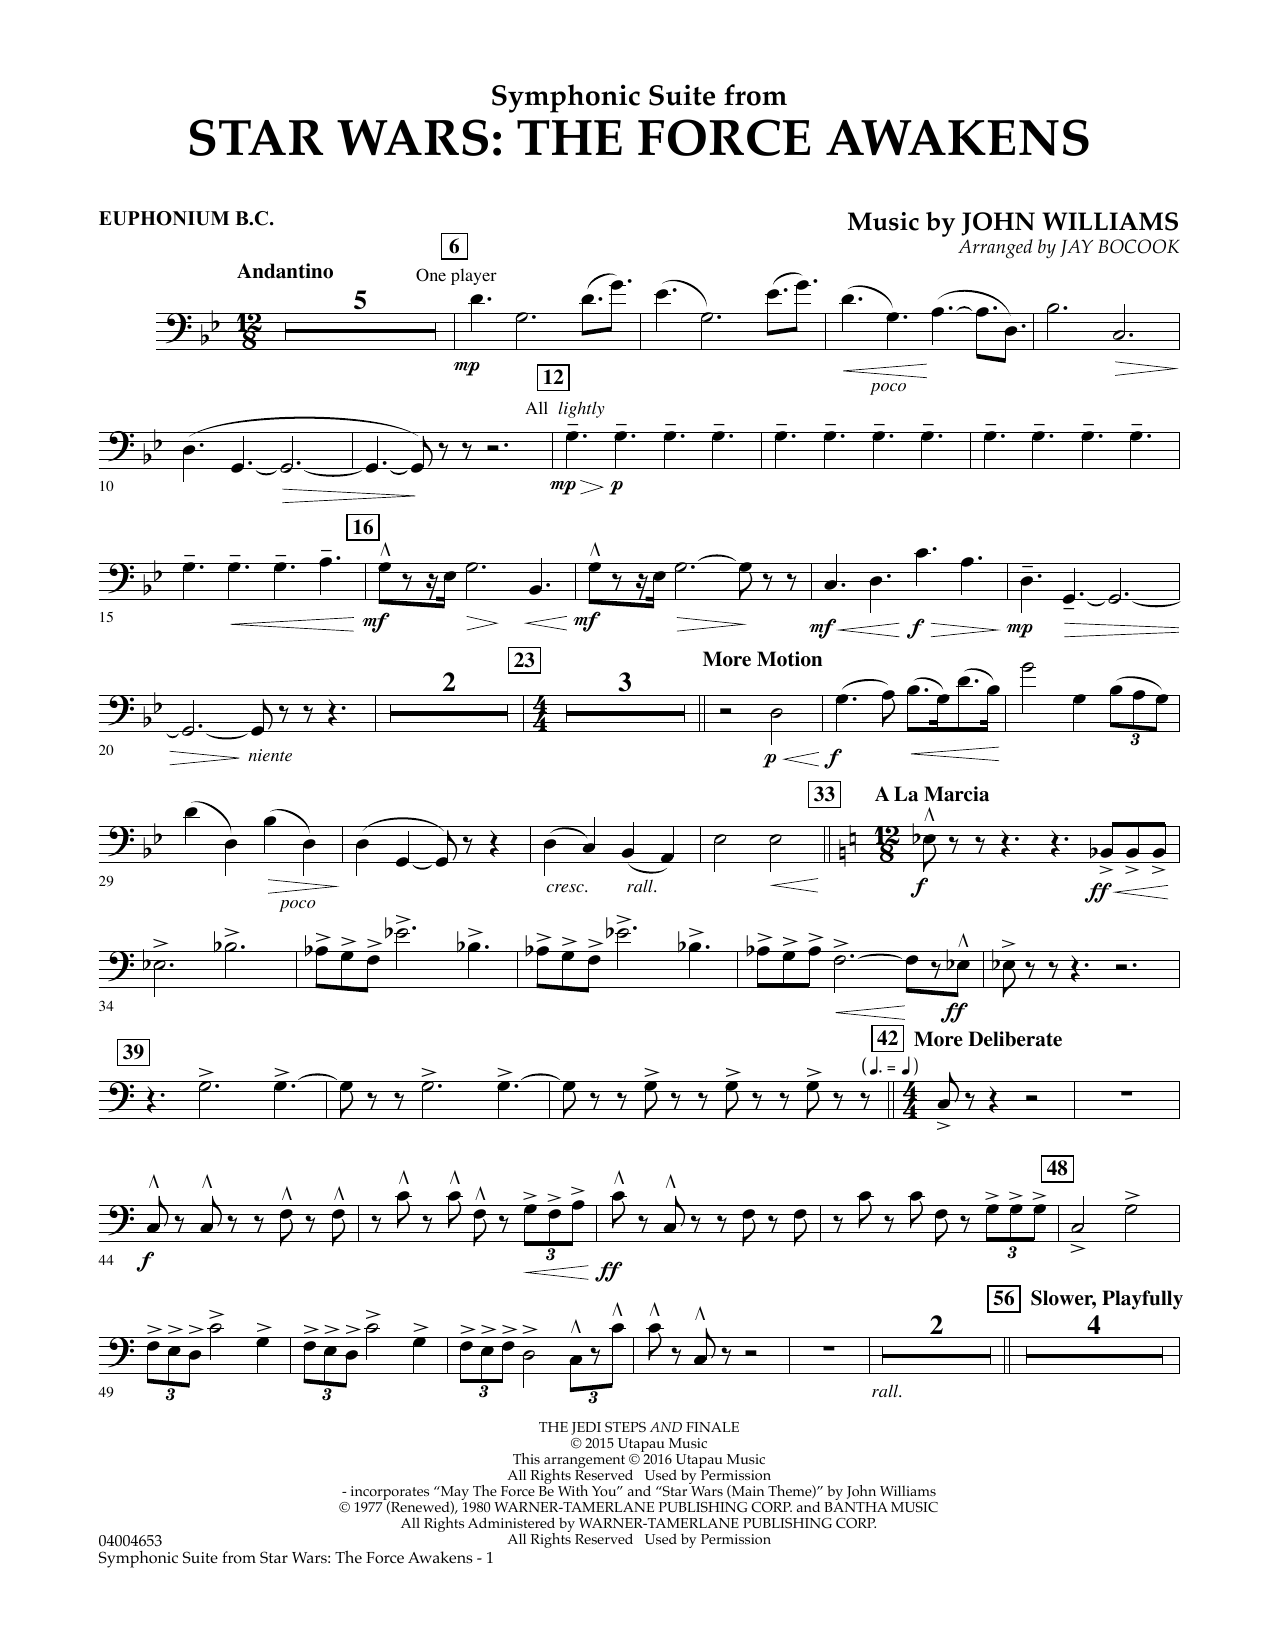 Symphonic Suite from Star Wars: The Force Awakens - Euphonium B.C. (Concert Band)